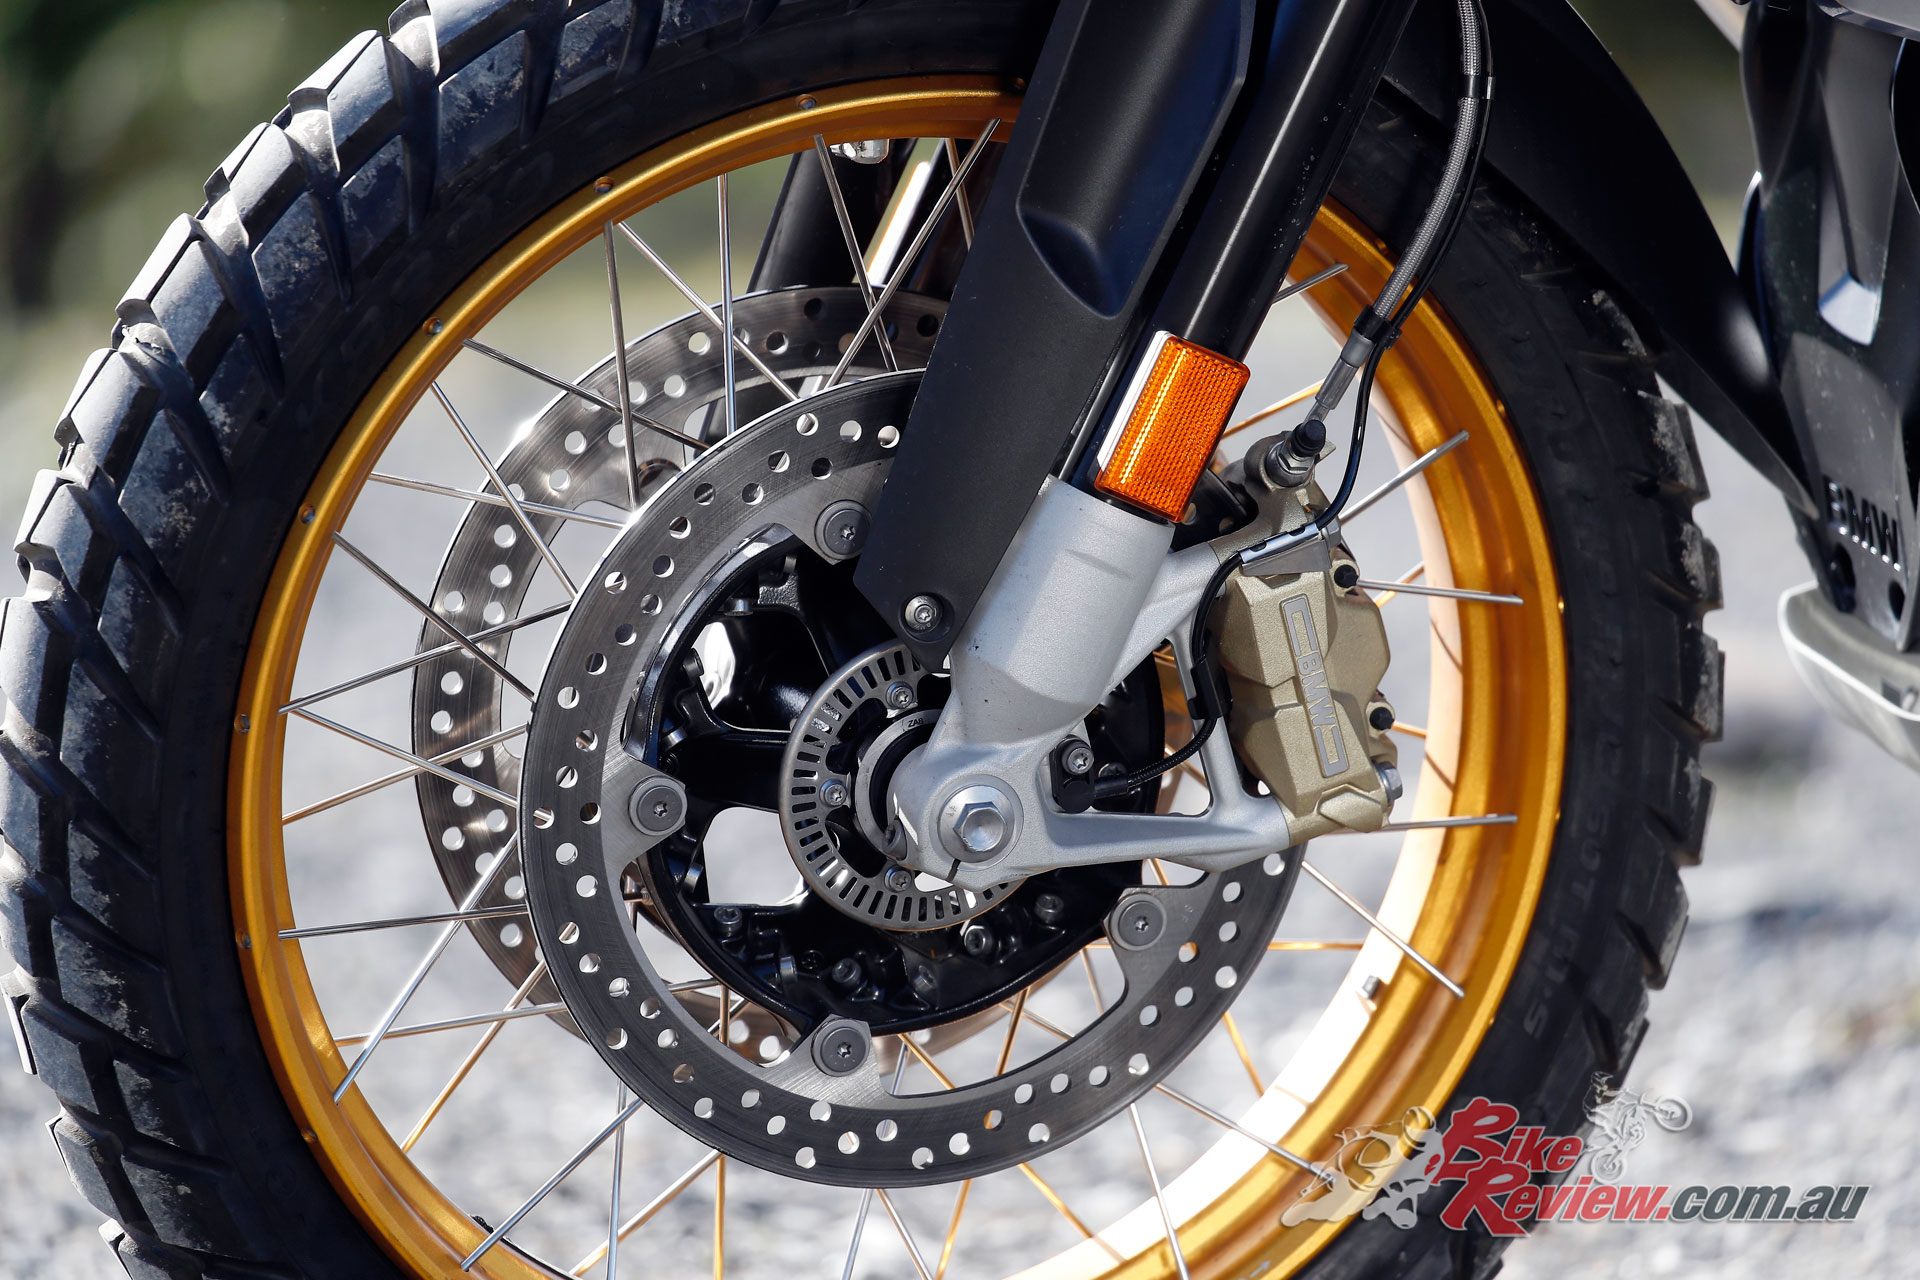 Brakes offer a high level of performance, while in off-road conditions simple grip is the biggest constraint